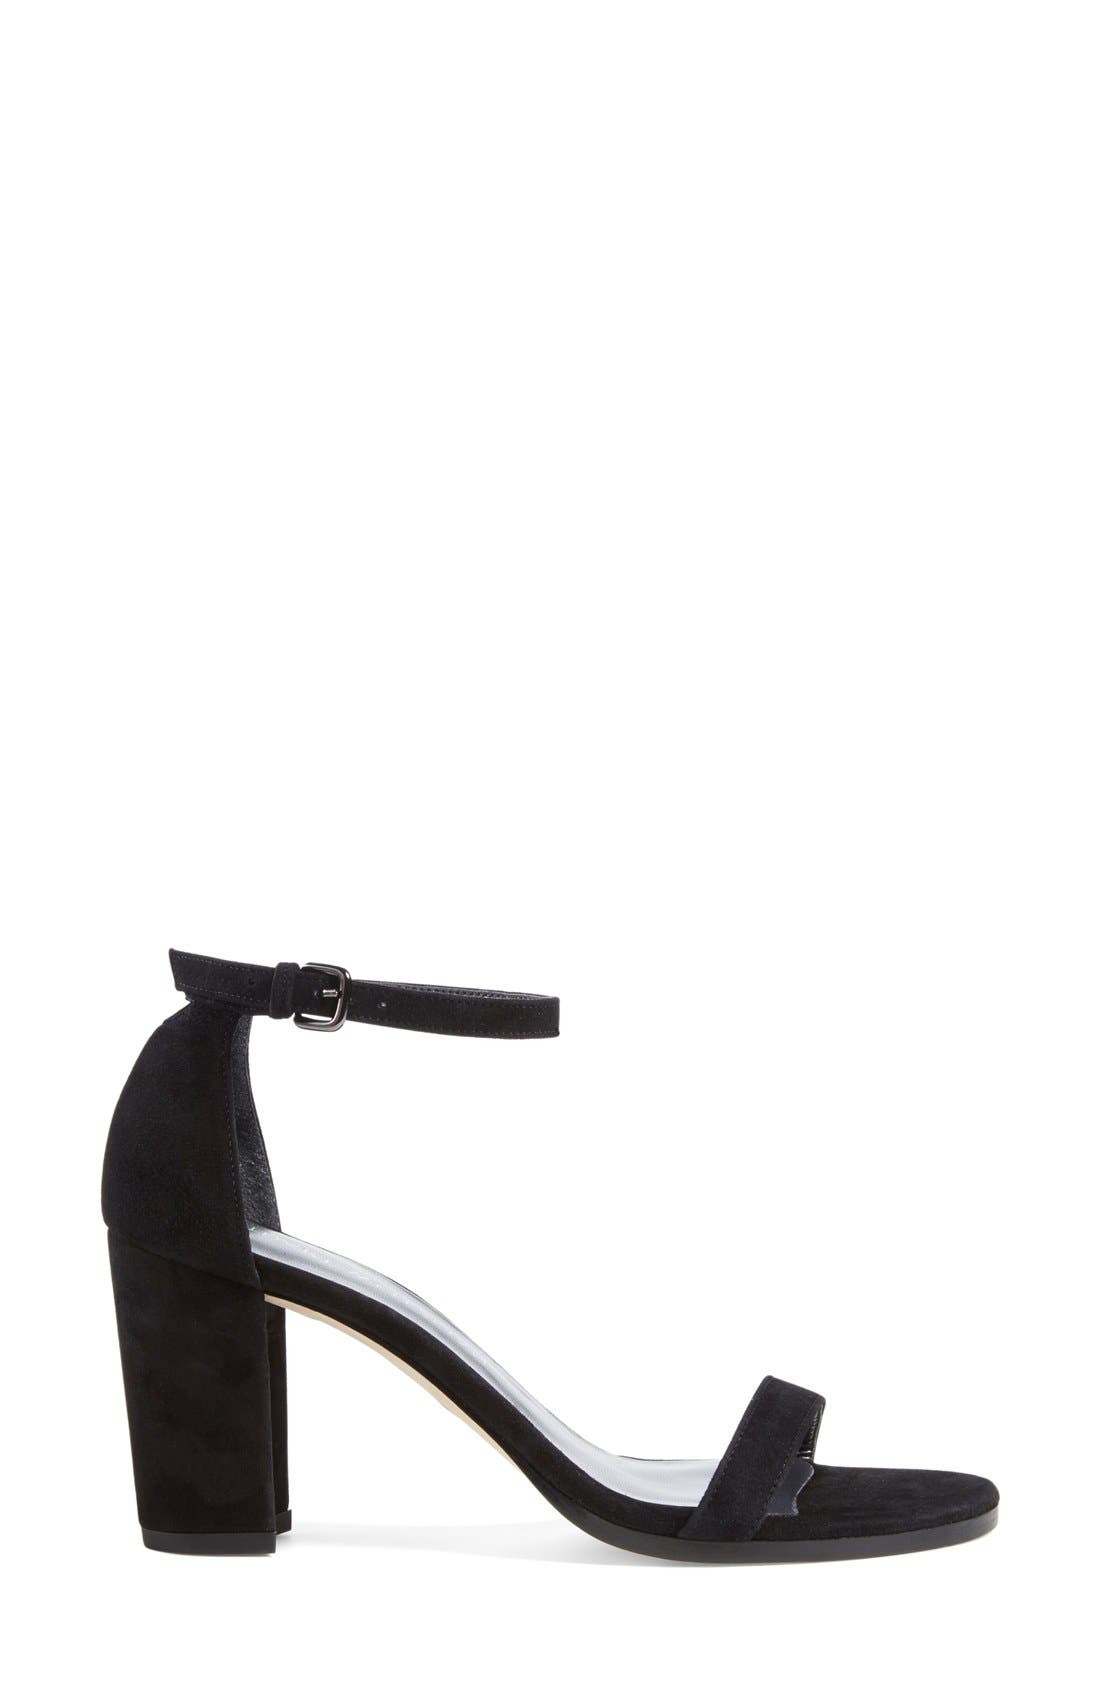 NearlyNude Ankle Strap Sandal,                             Alternate thumbnail 37, color,